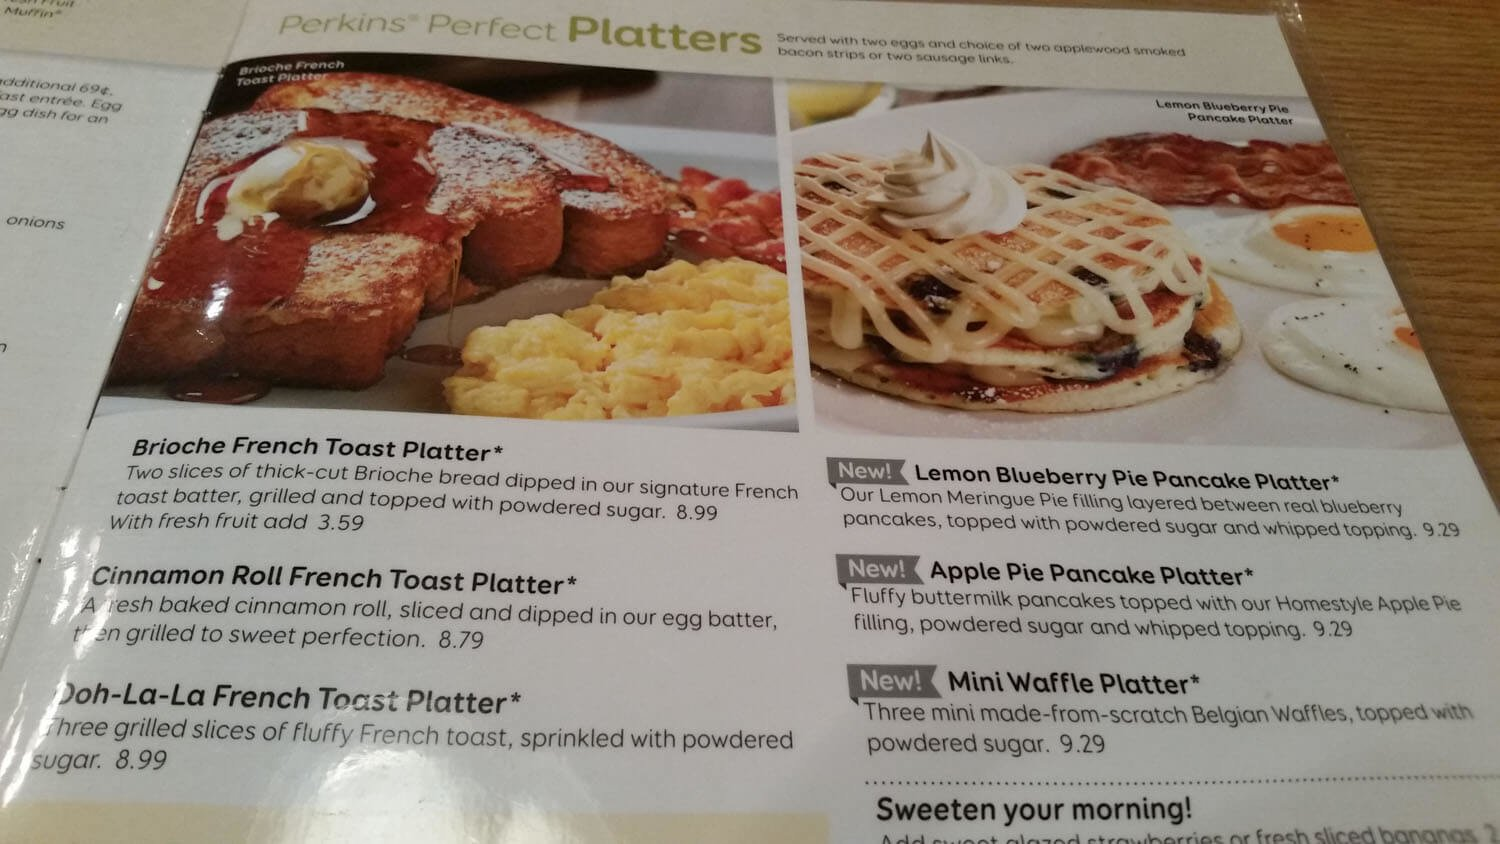 Perkins Menu – 5